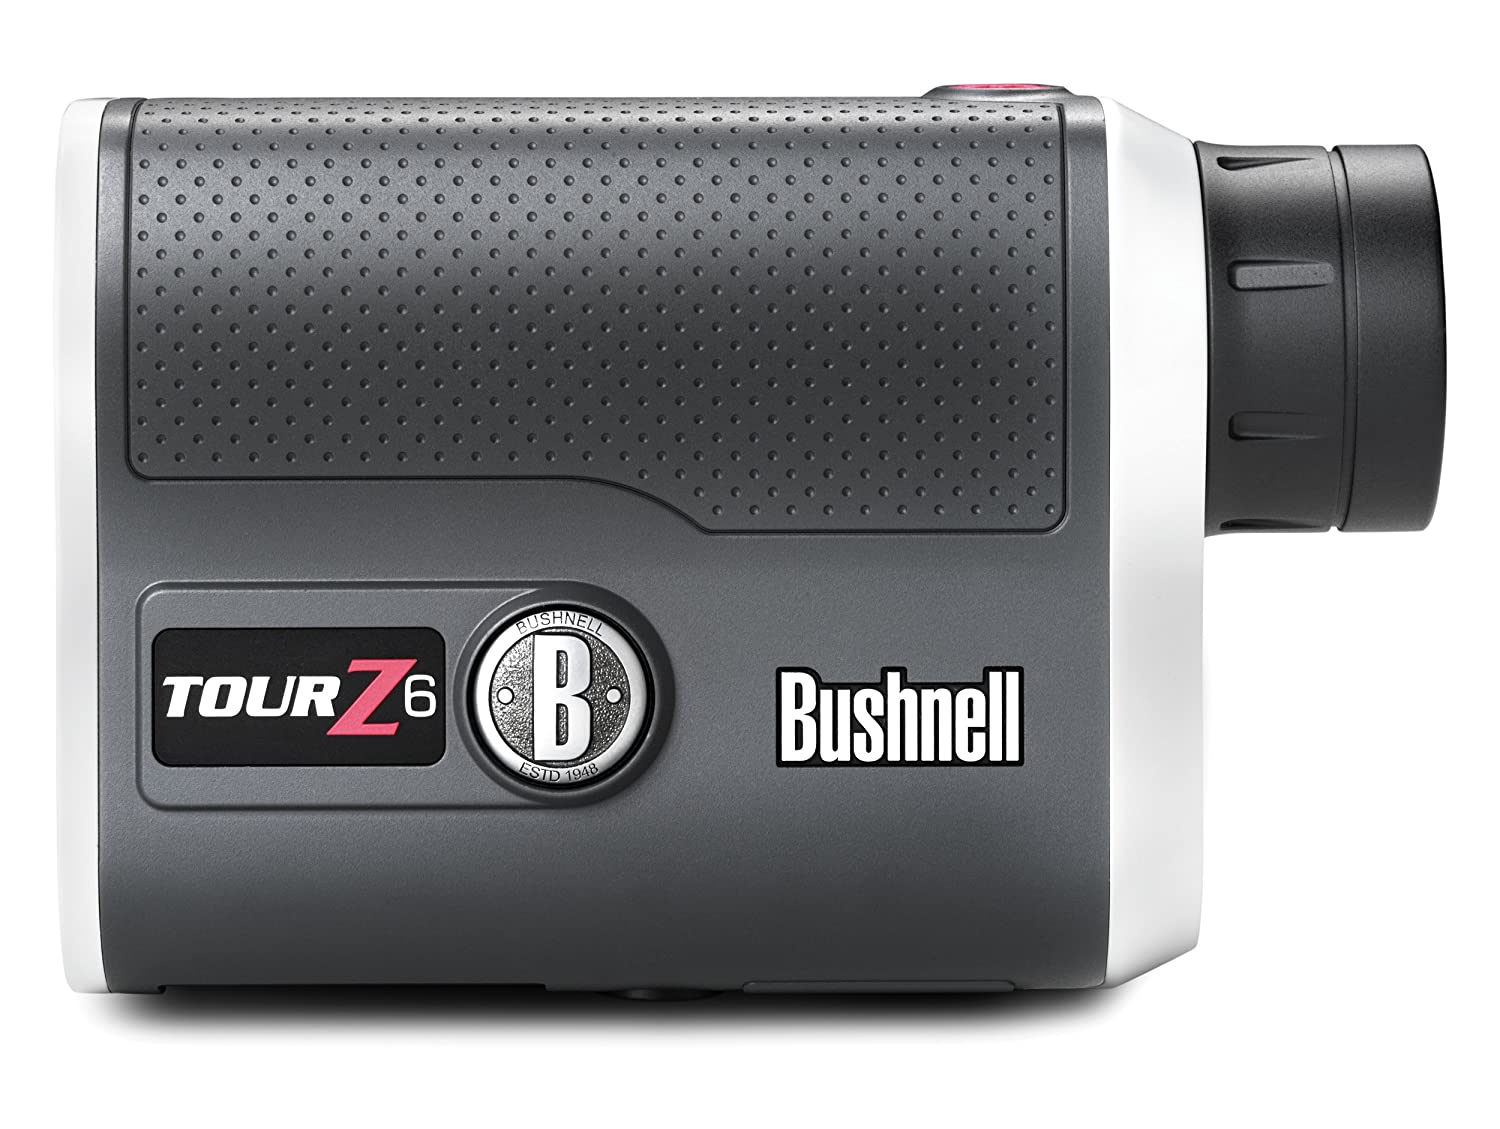 Bushnell entfernungsmesser laser z tournament edition weiß